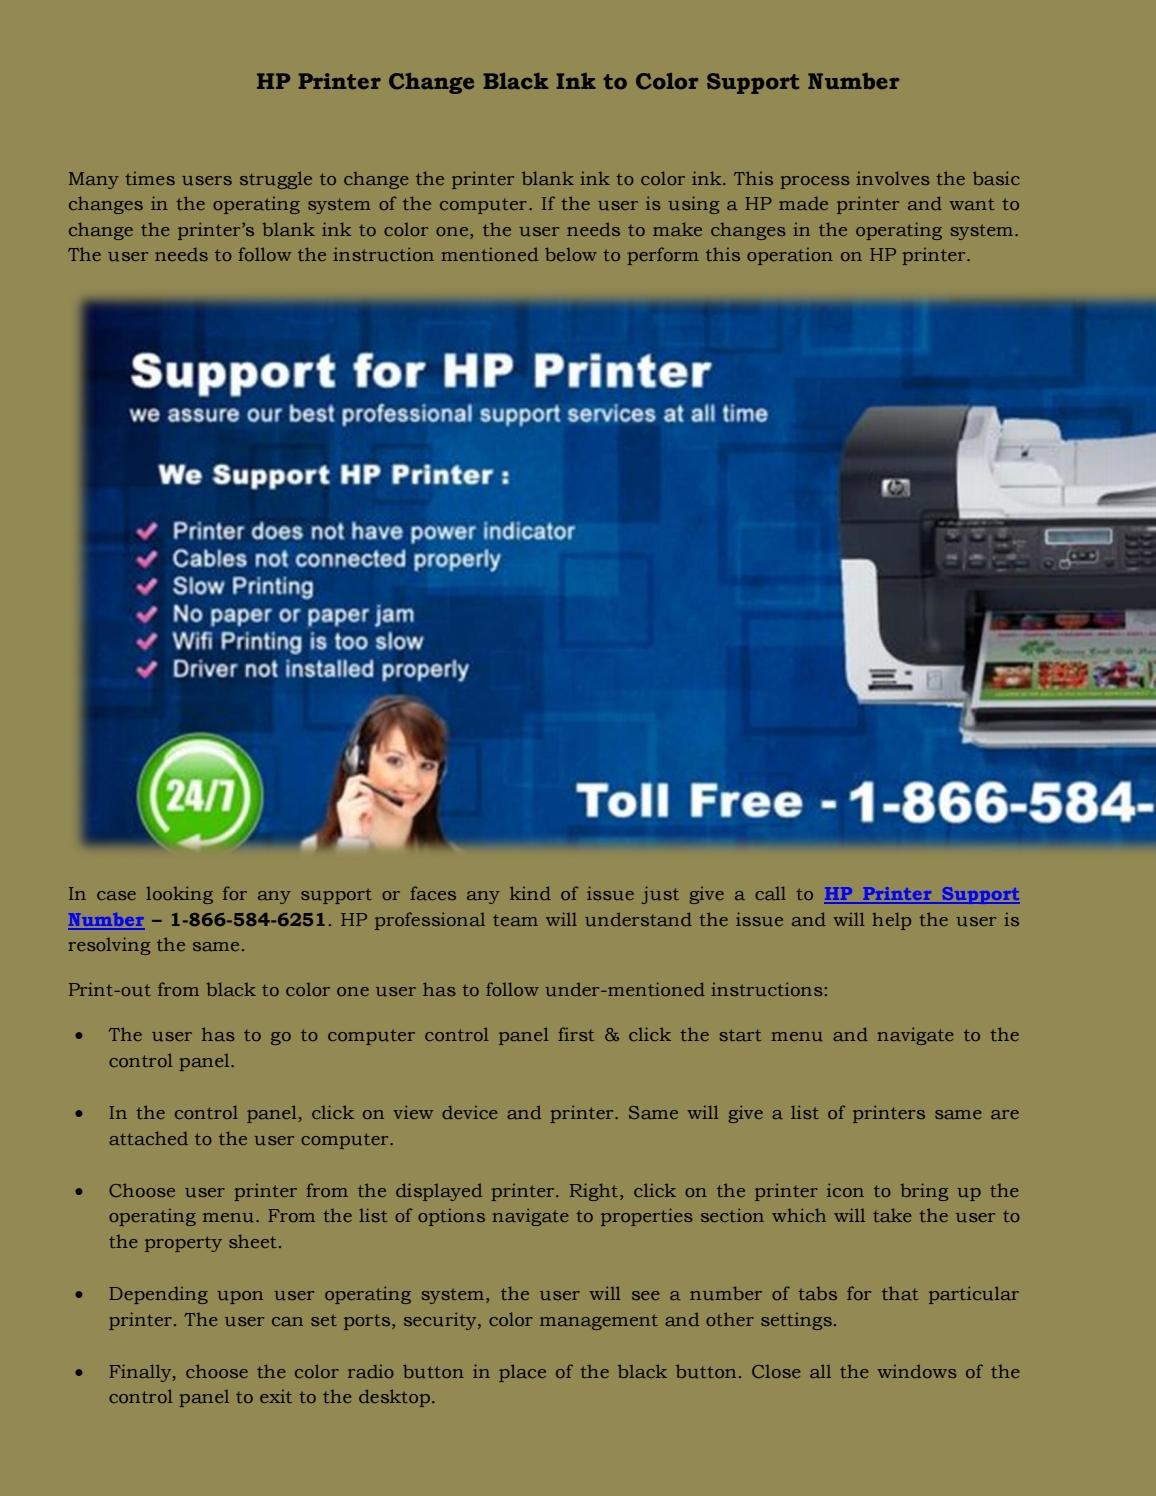 HP Printer Change Black Ink to Color by Printer